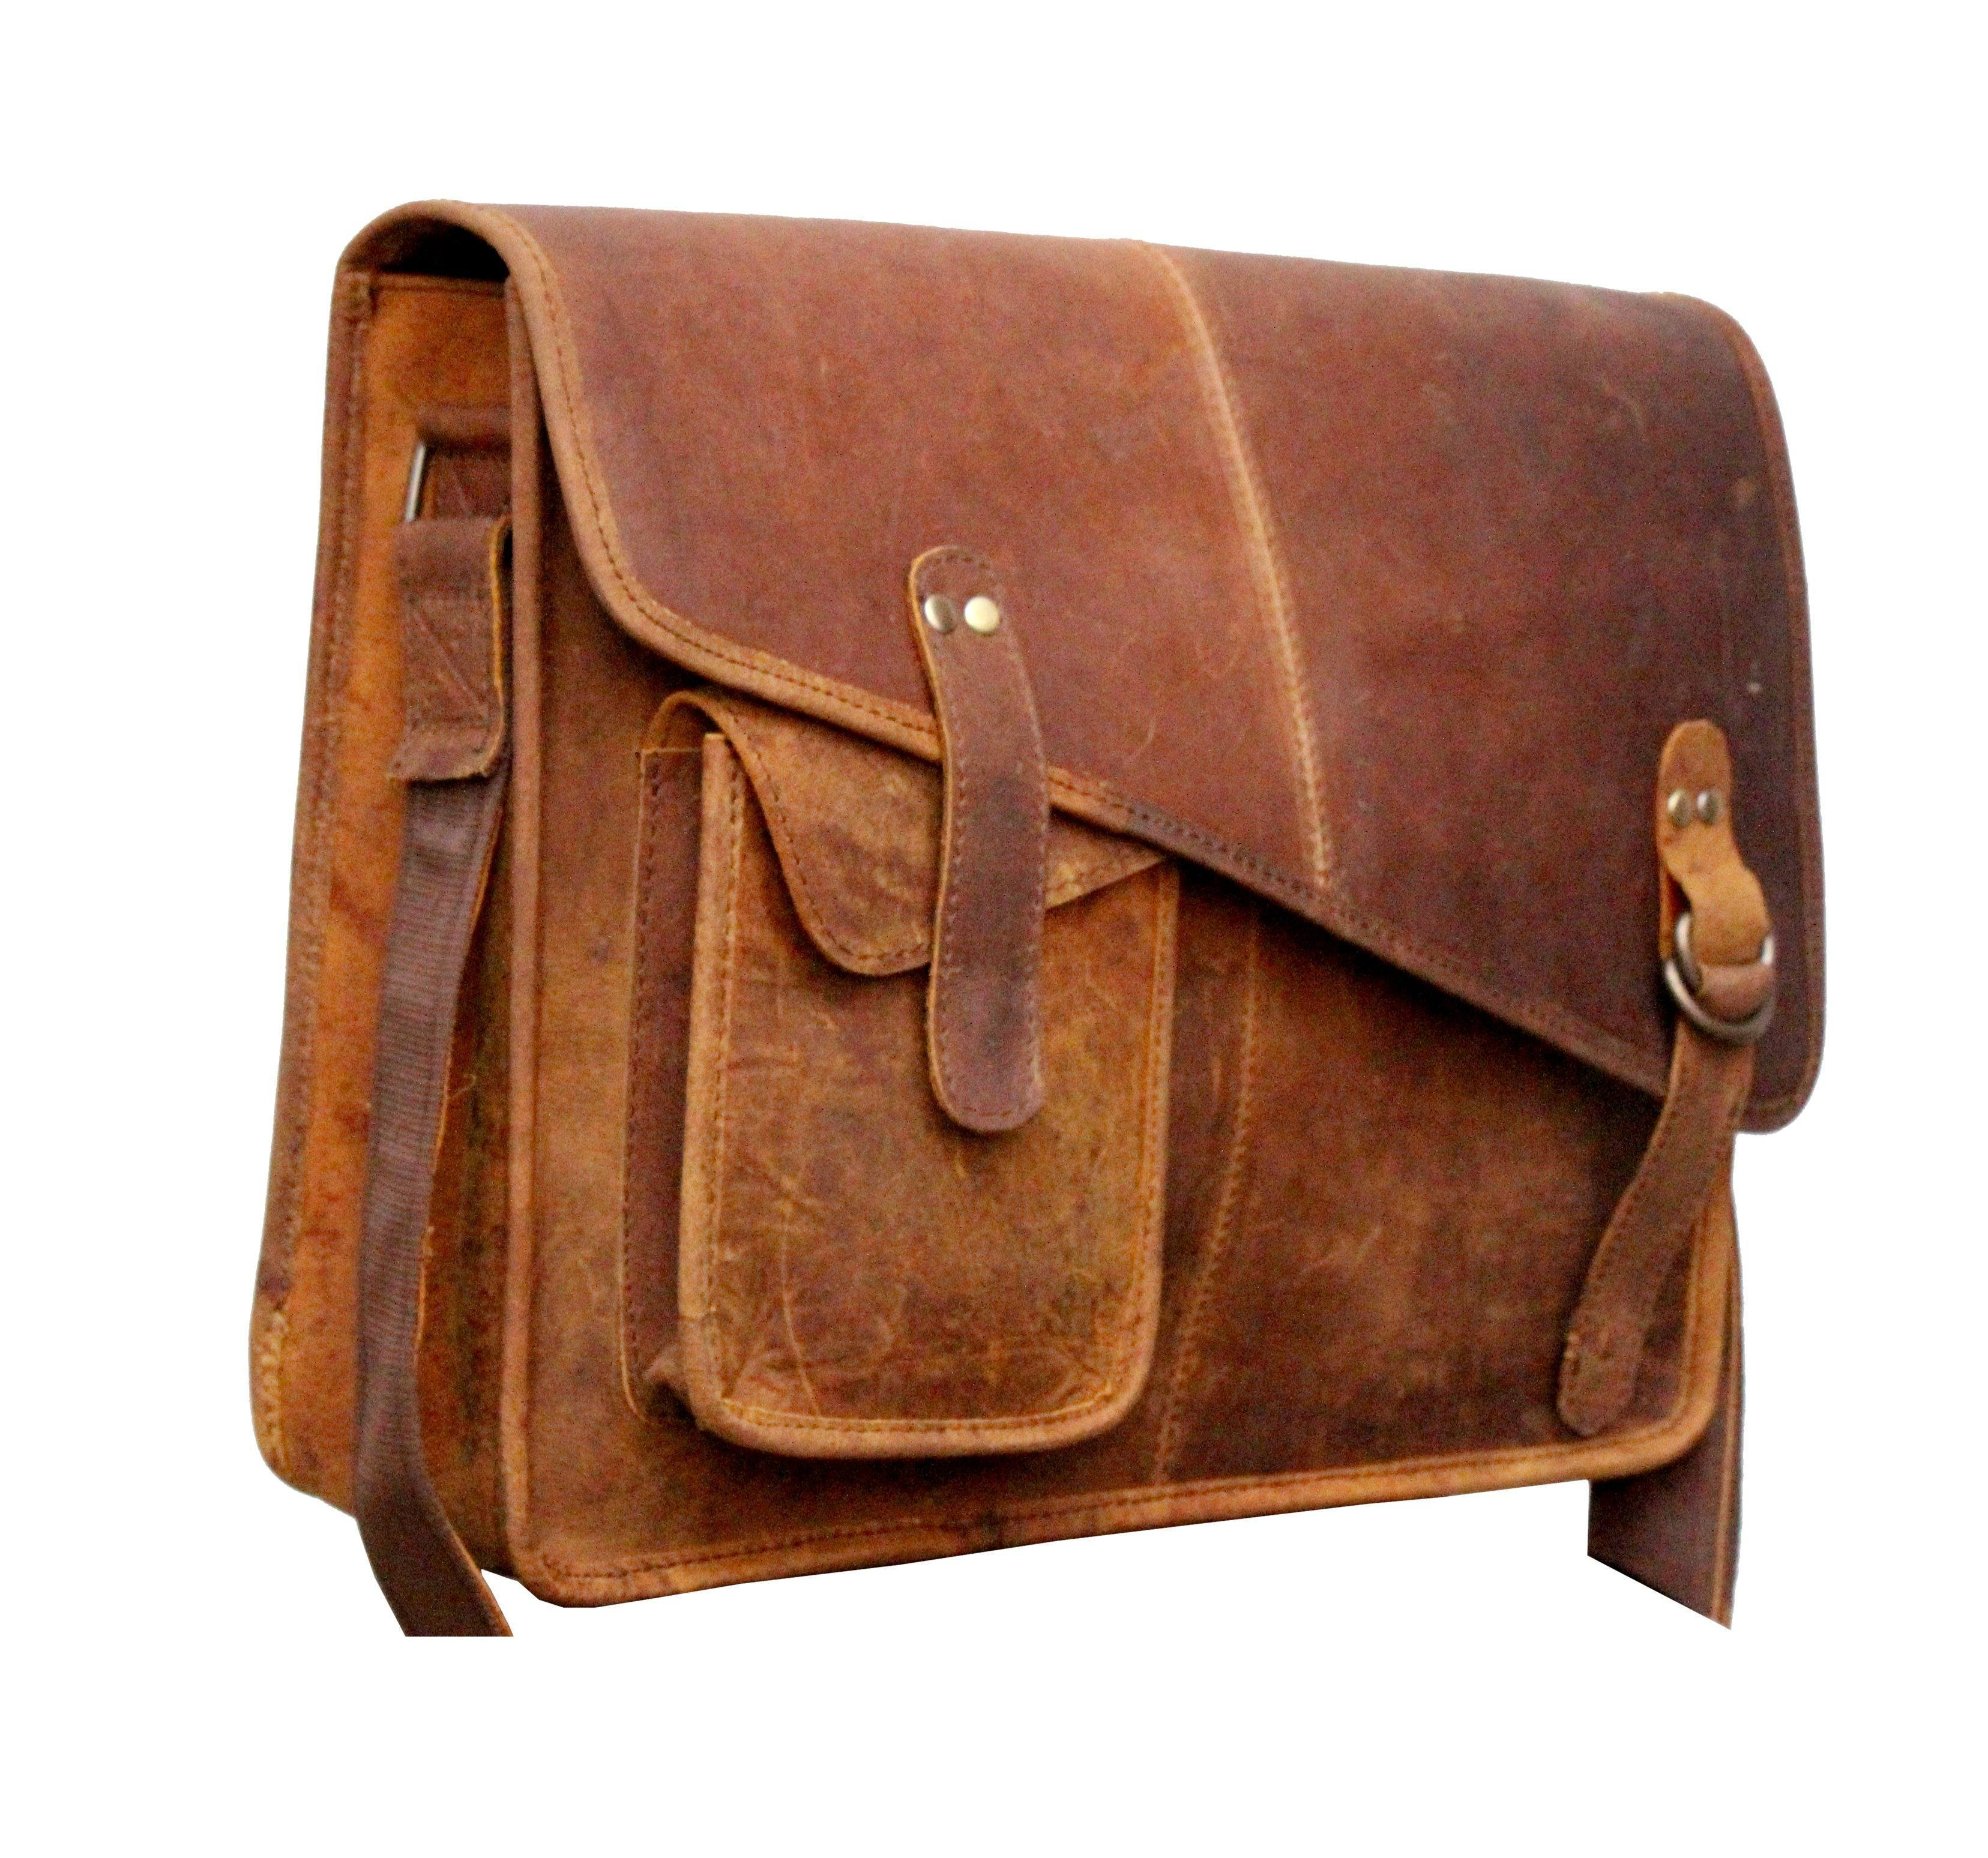 Leather - IN-INDIA Modern Trend Magnetic 15 Inches Buffalo Hunter Leather Messenger Professional Bag - Fits Laptop Upto 15.6 Inches